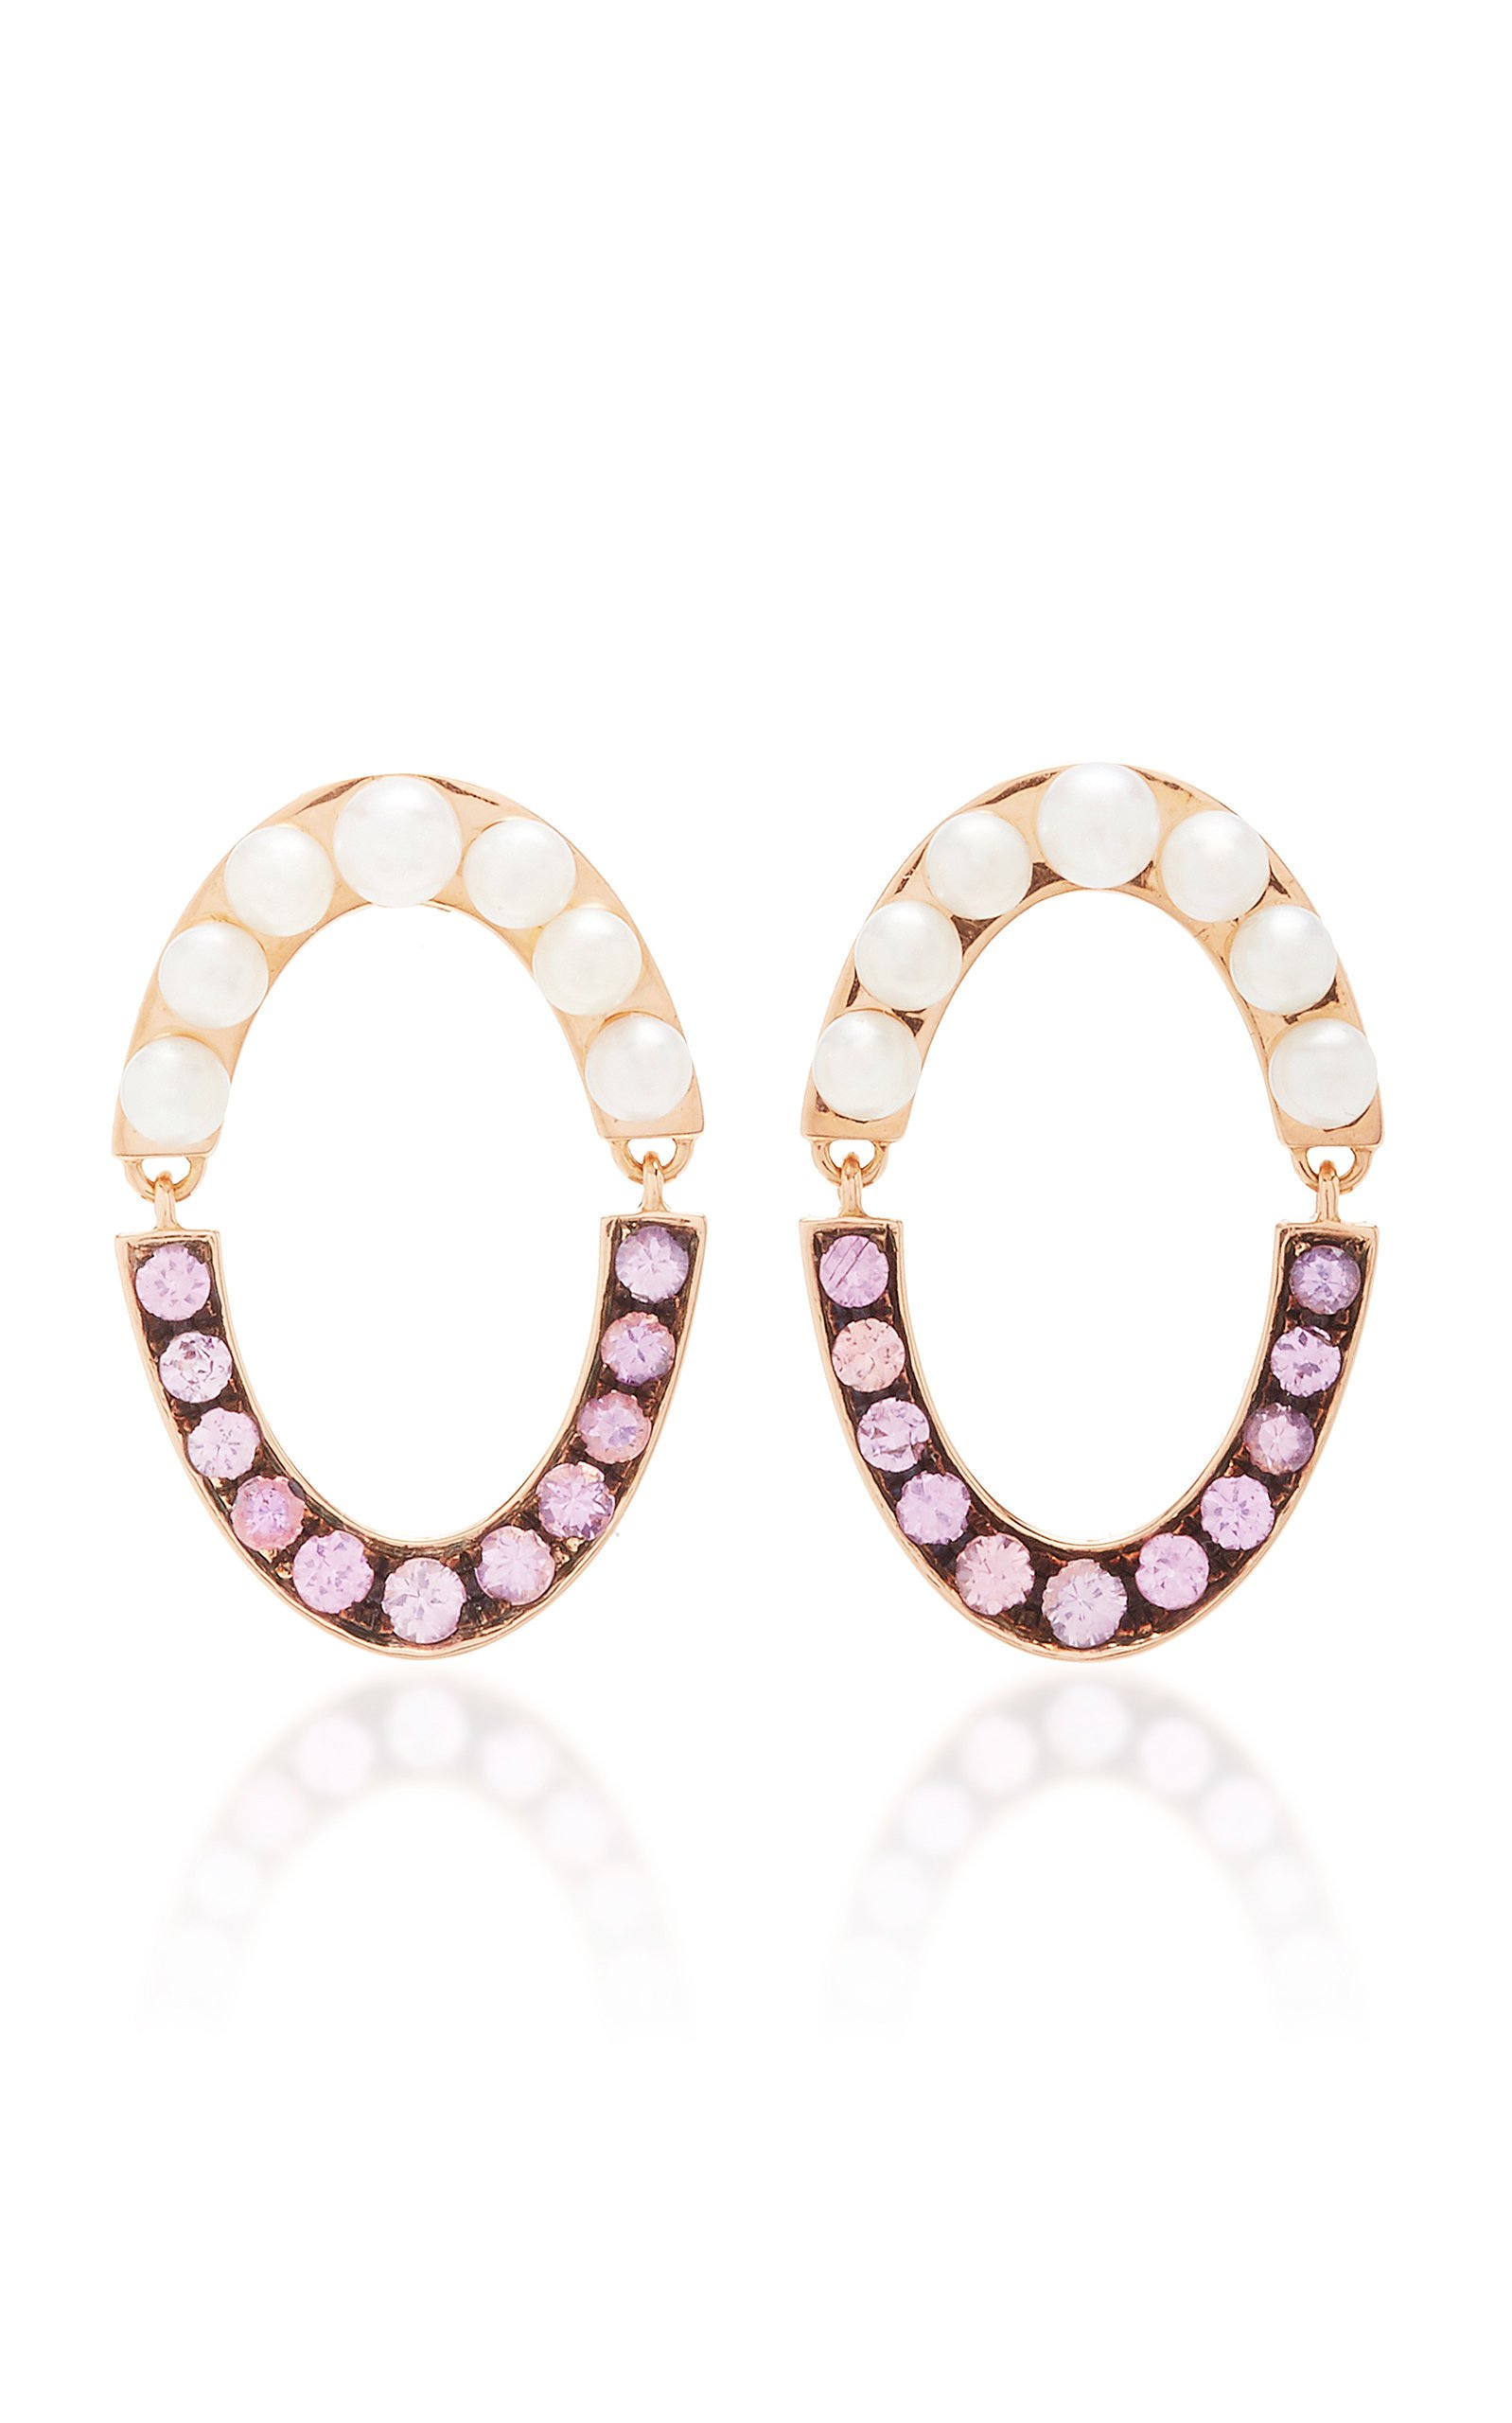 Jemma Wynne 18k rose gold oval drop earrings with pink sapphires and pearls